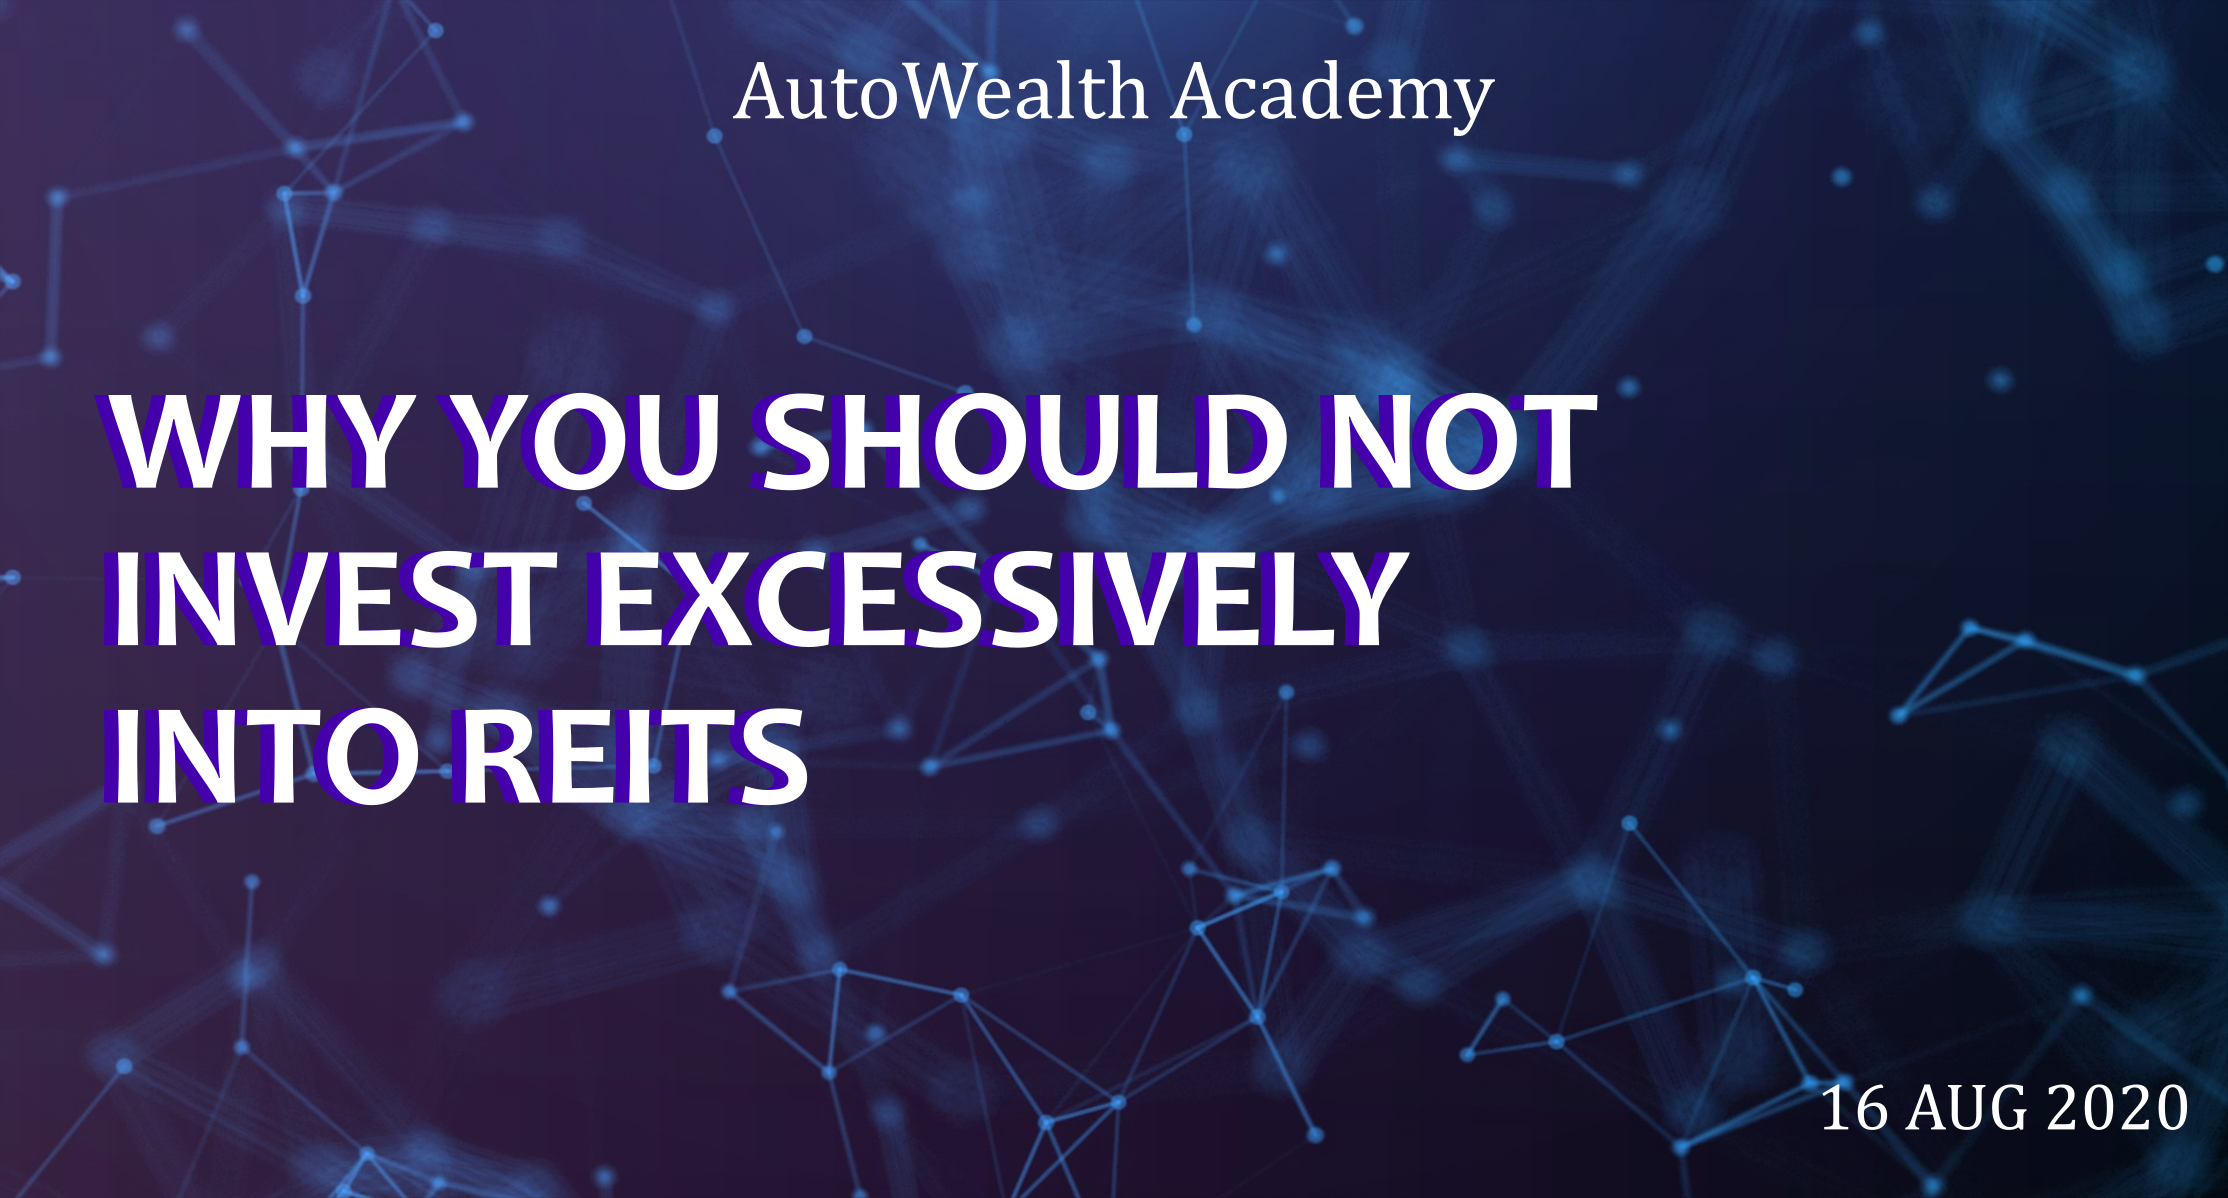 Not Invest Excessively into REITs